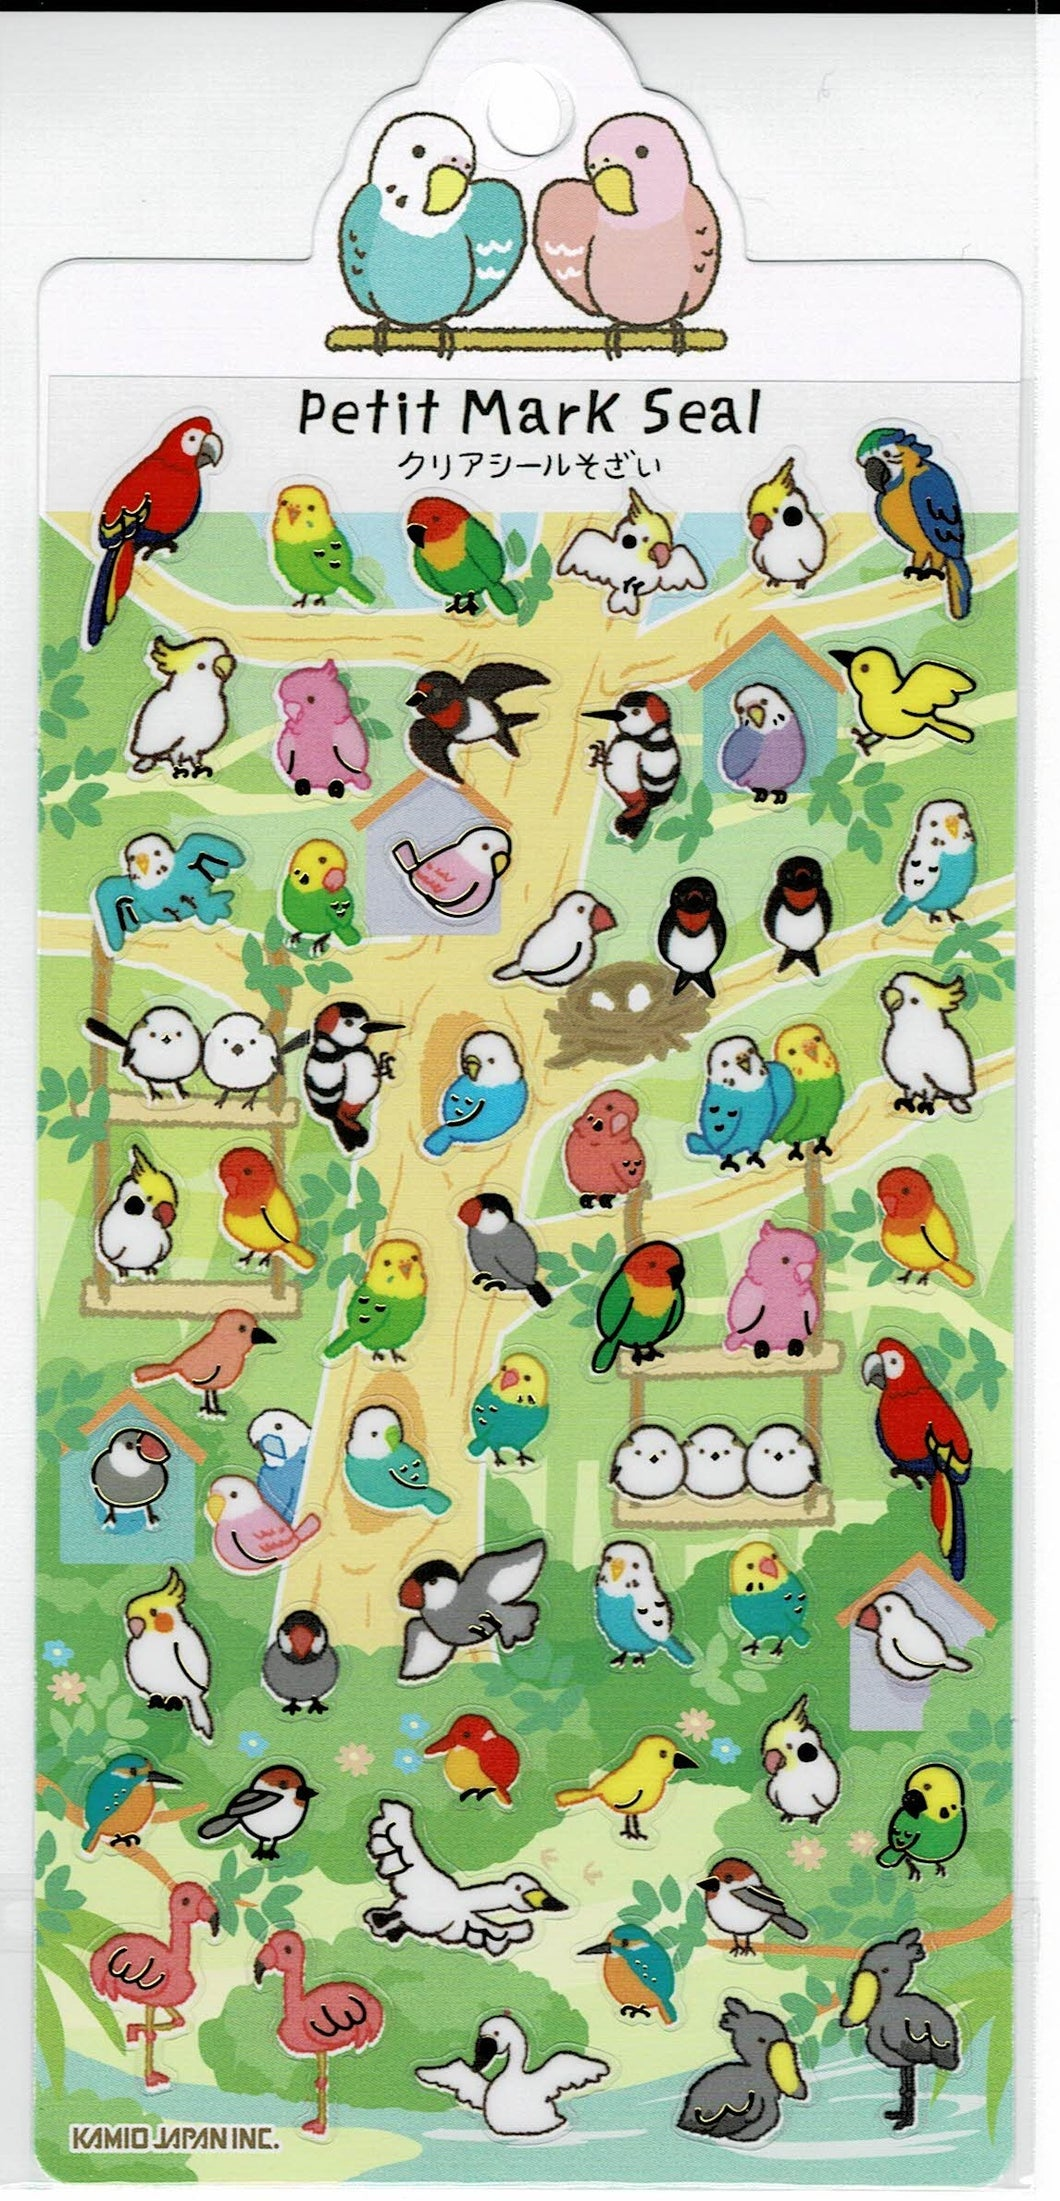 Birds on the Tree Stickers with Gold Accent Budgie Budgerigar Parakeet Love Bird Cockatiel Macaw Java Sparrow Bourke's Parakeet Java Sparrow Cockatoo Long-tailed Tit Flamingo Shoebill, etc. - Boutique SWEET BIRDIE